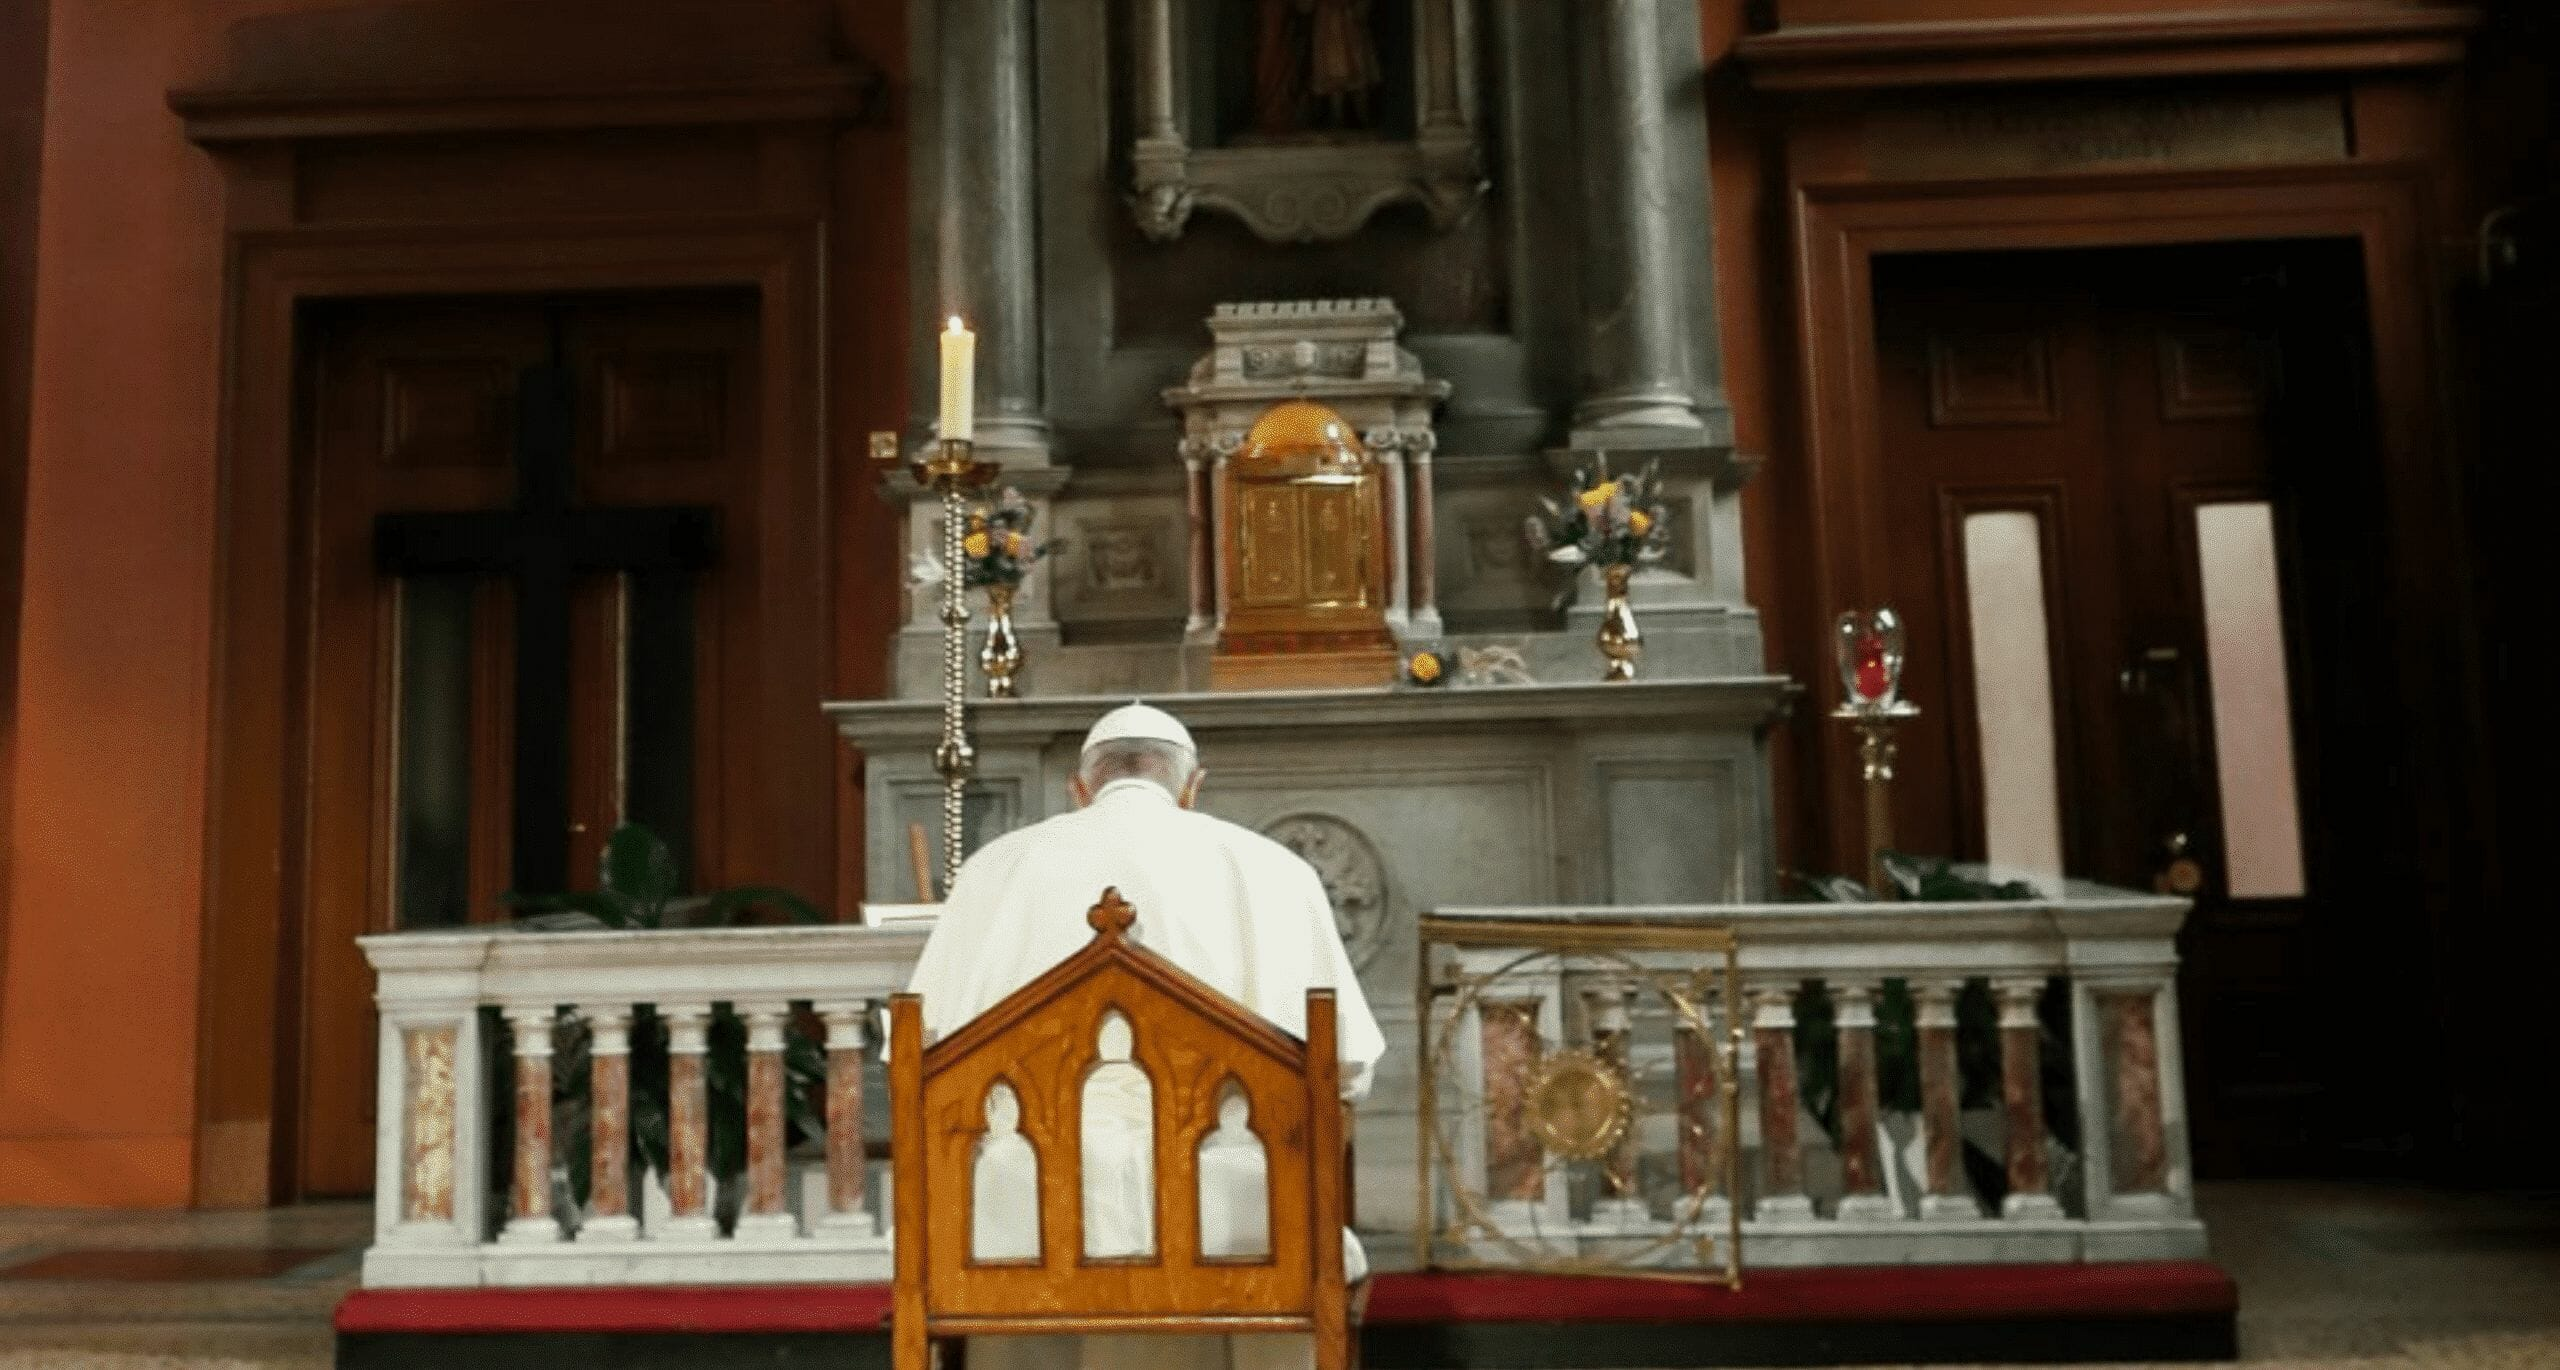 Pope Francis prays before a Candle of Atonement in Dublin's St Mary's pro-Cathedral, August 2019